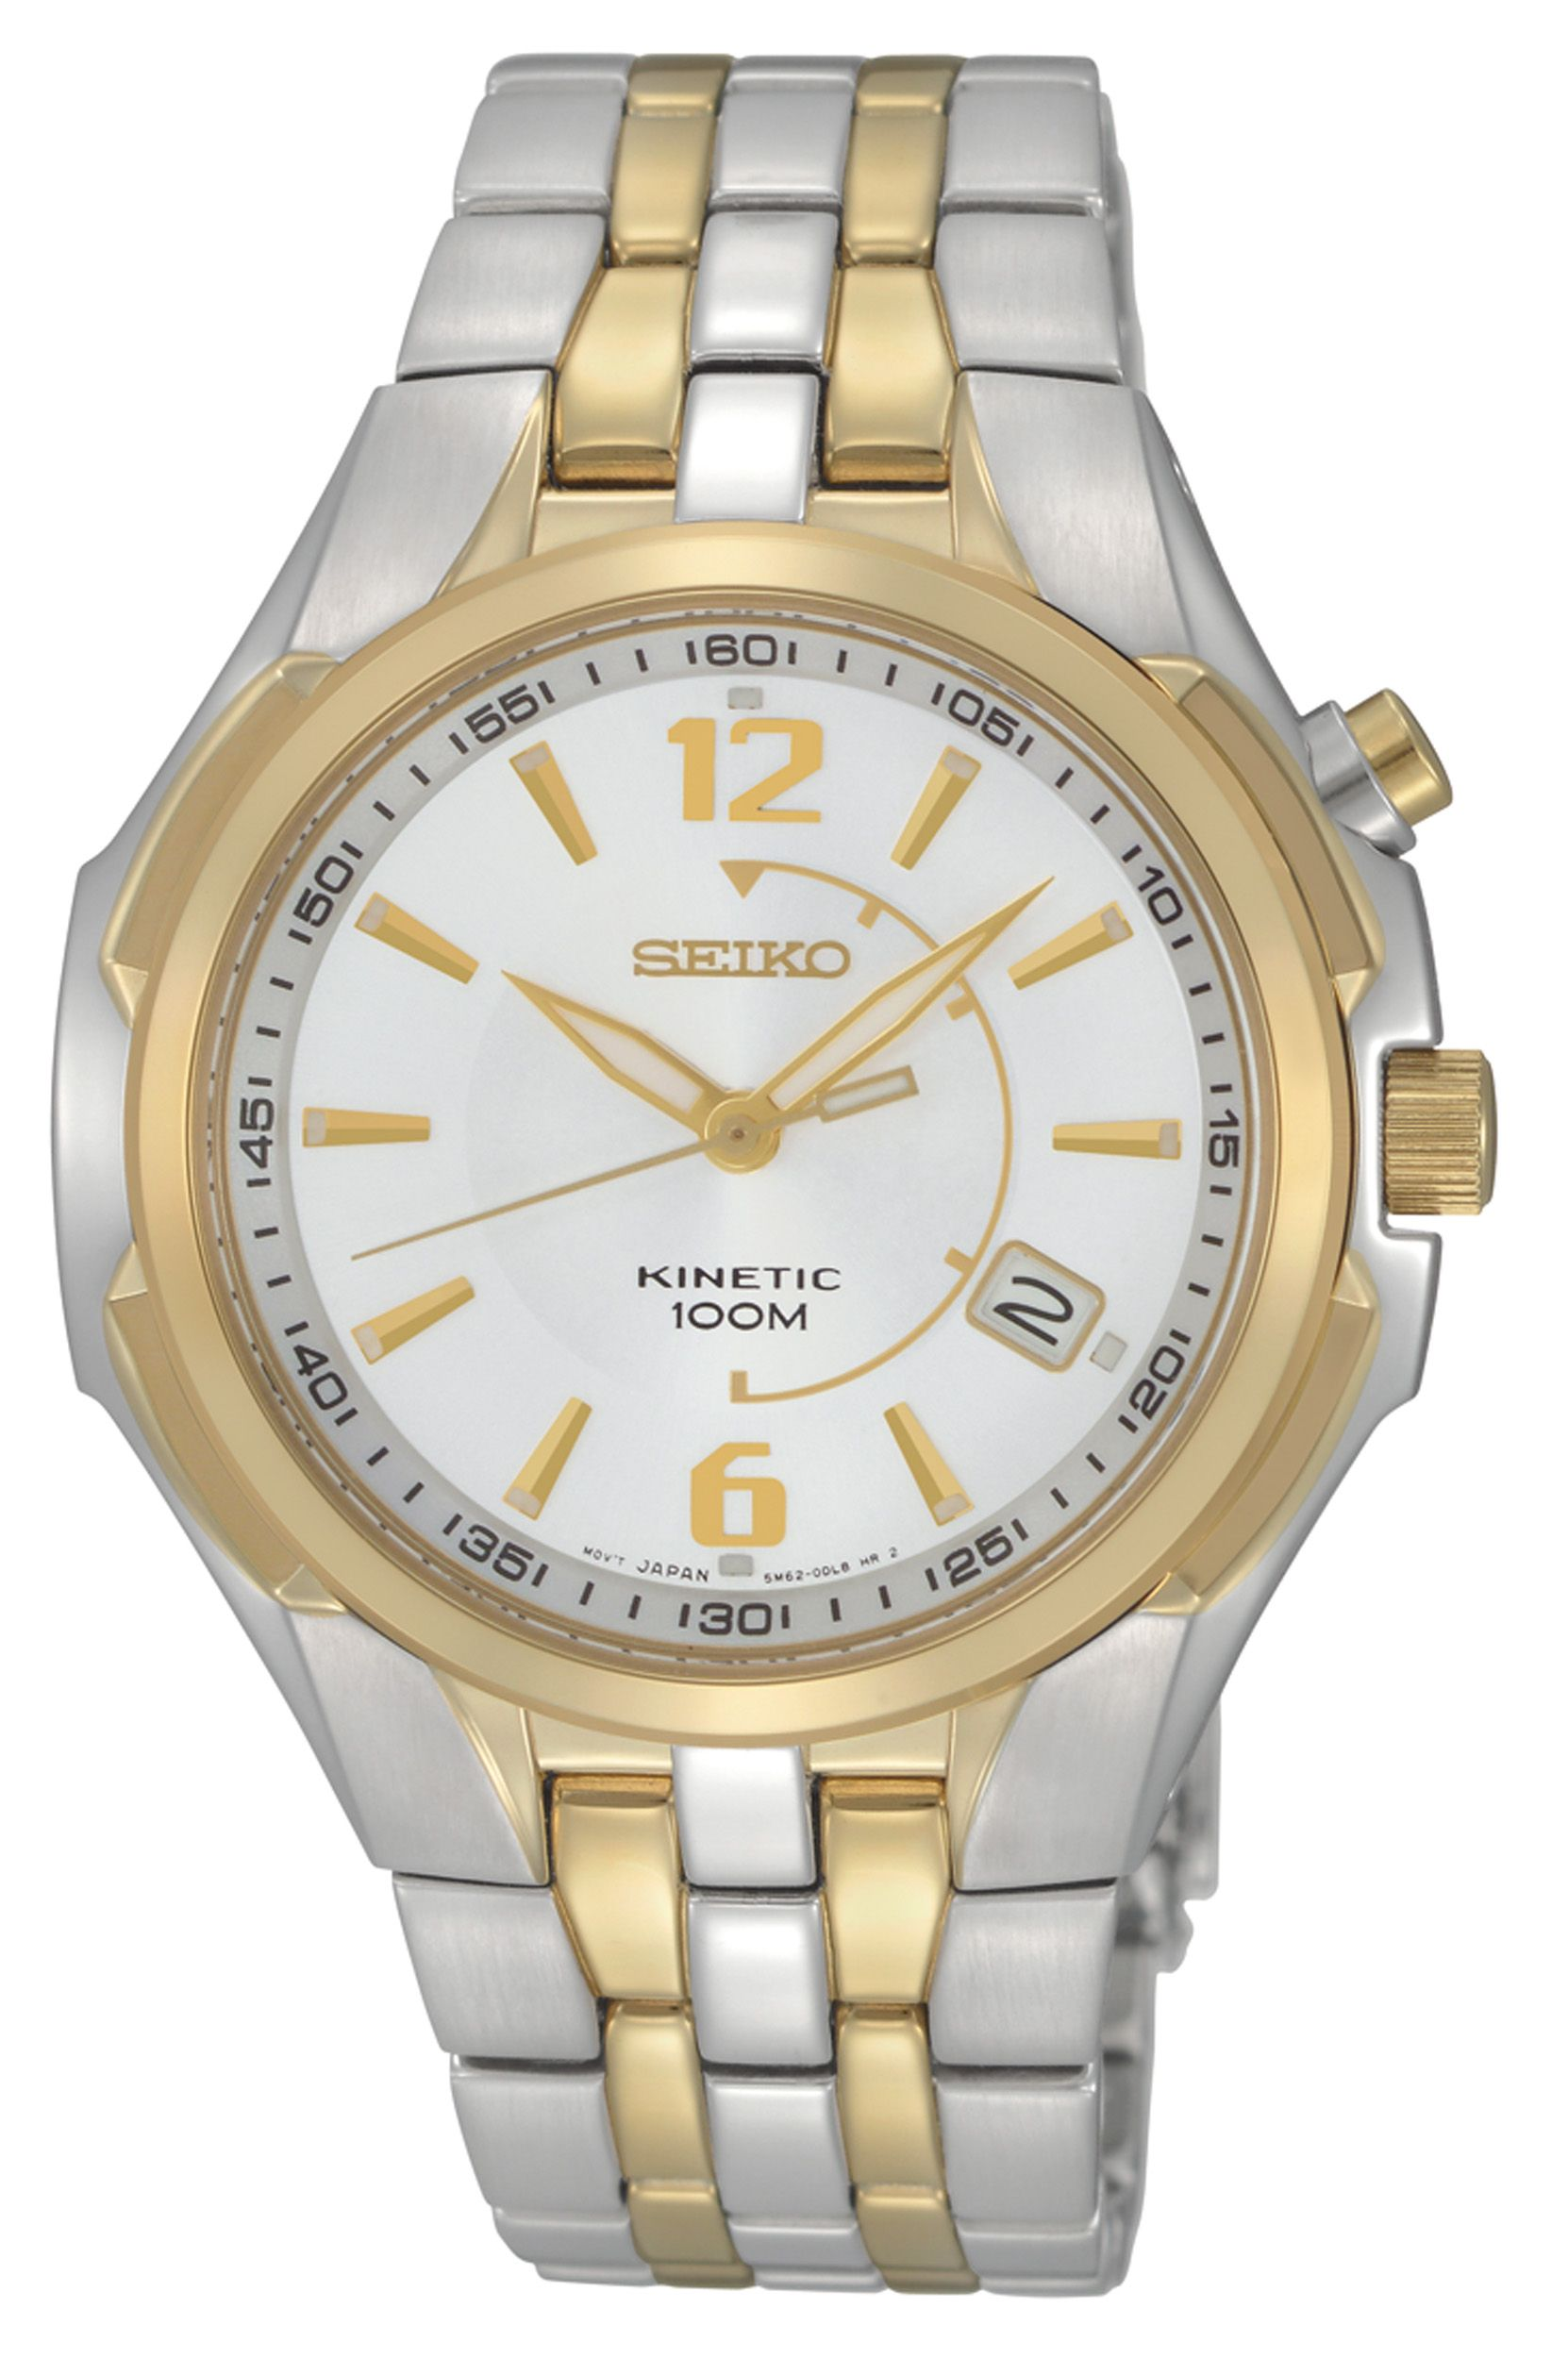 Seiko kinetic watch environmentally friendly watch with stainless steel and gold band ska516 for Seiko kinetic watches